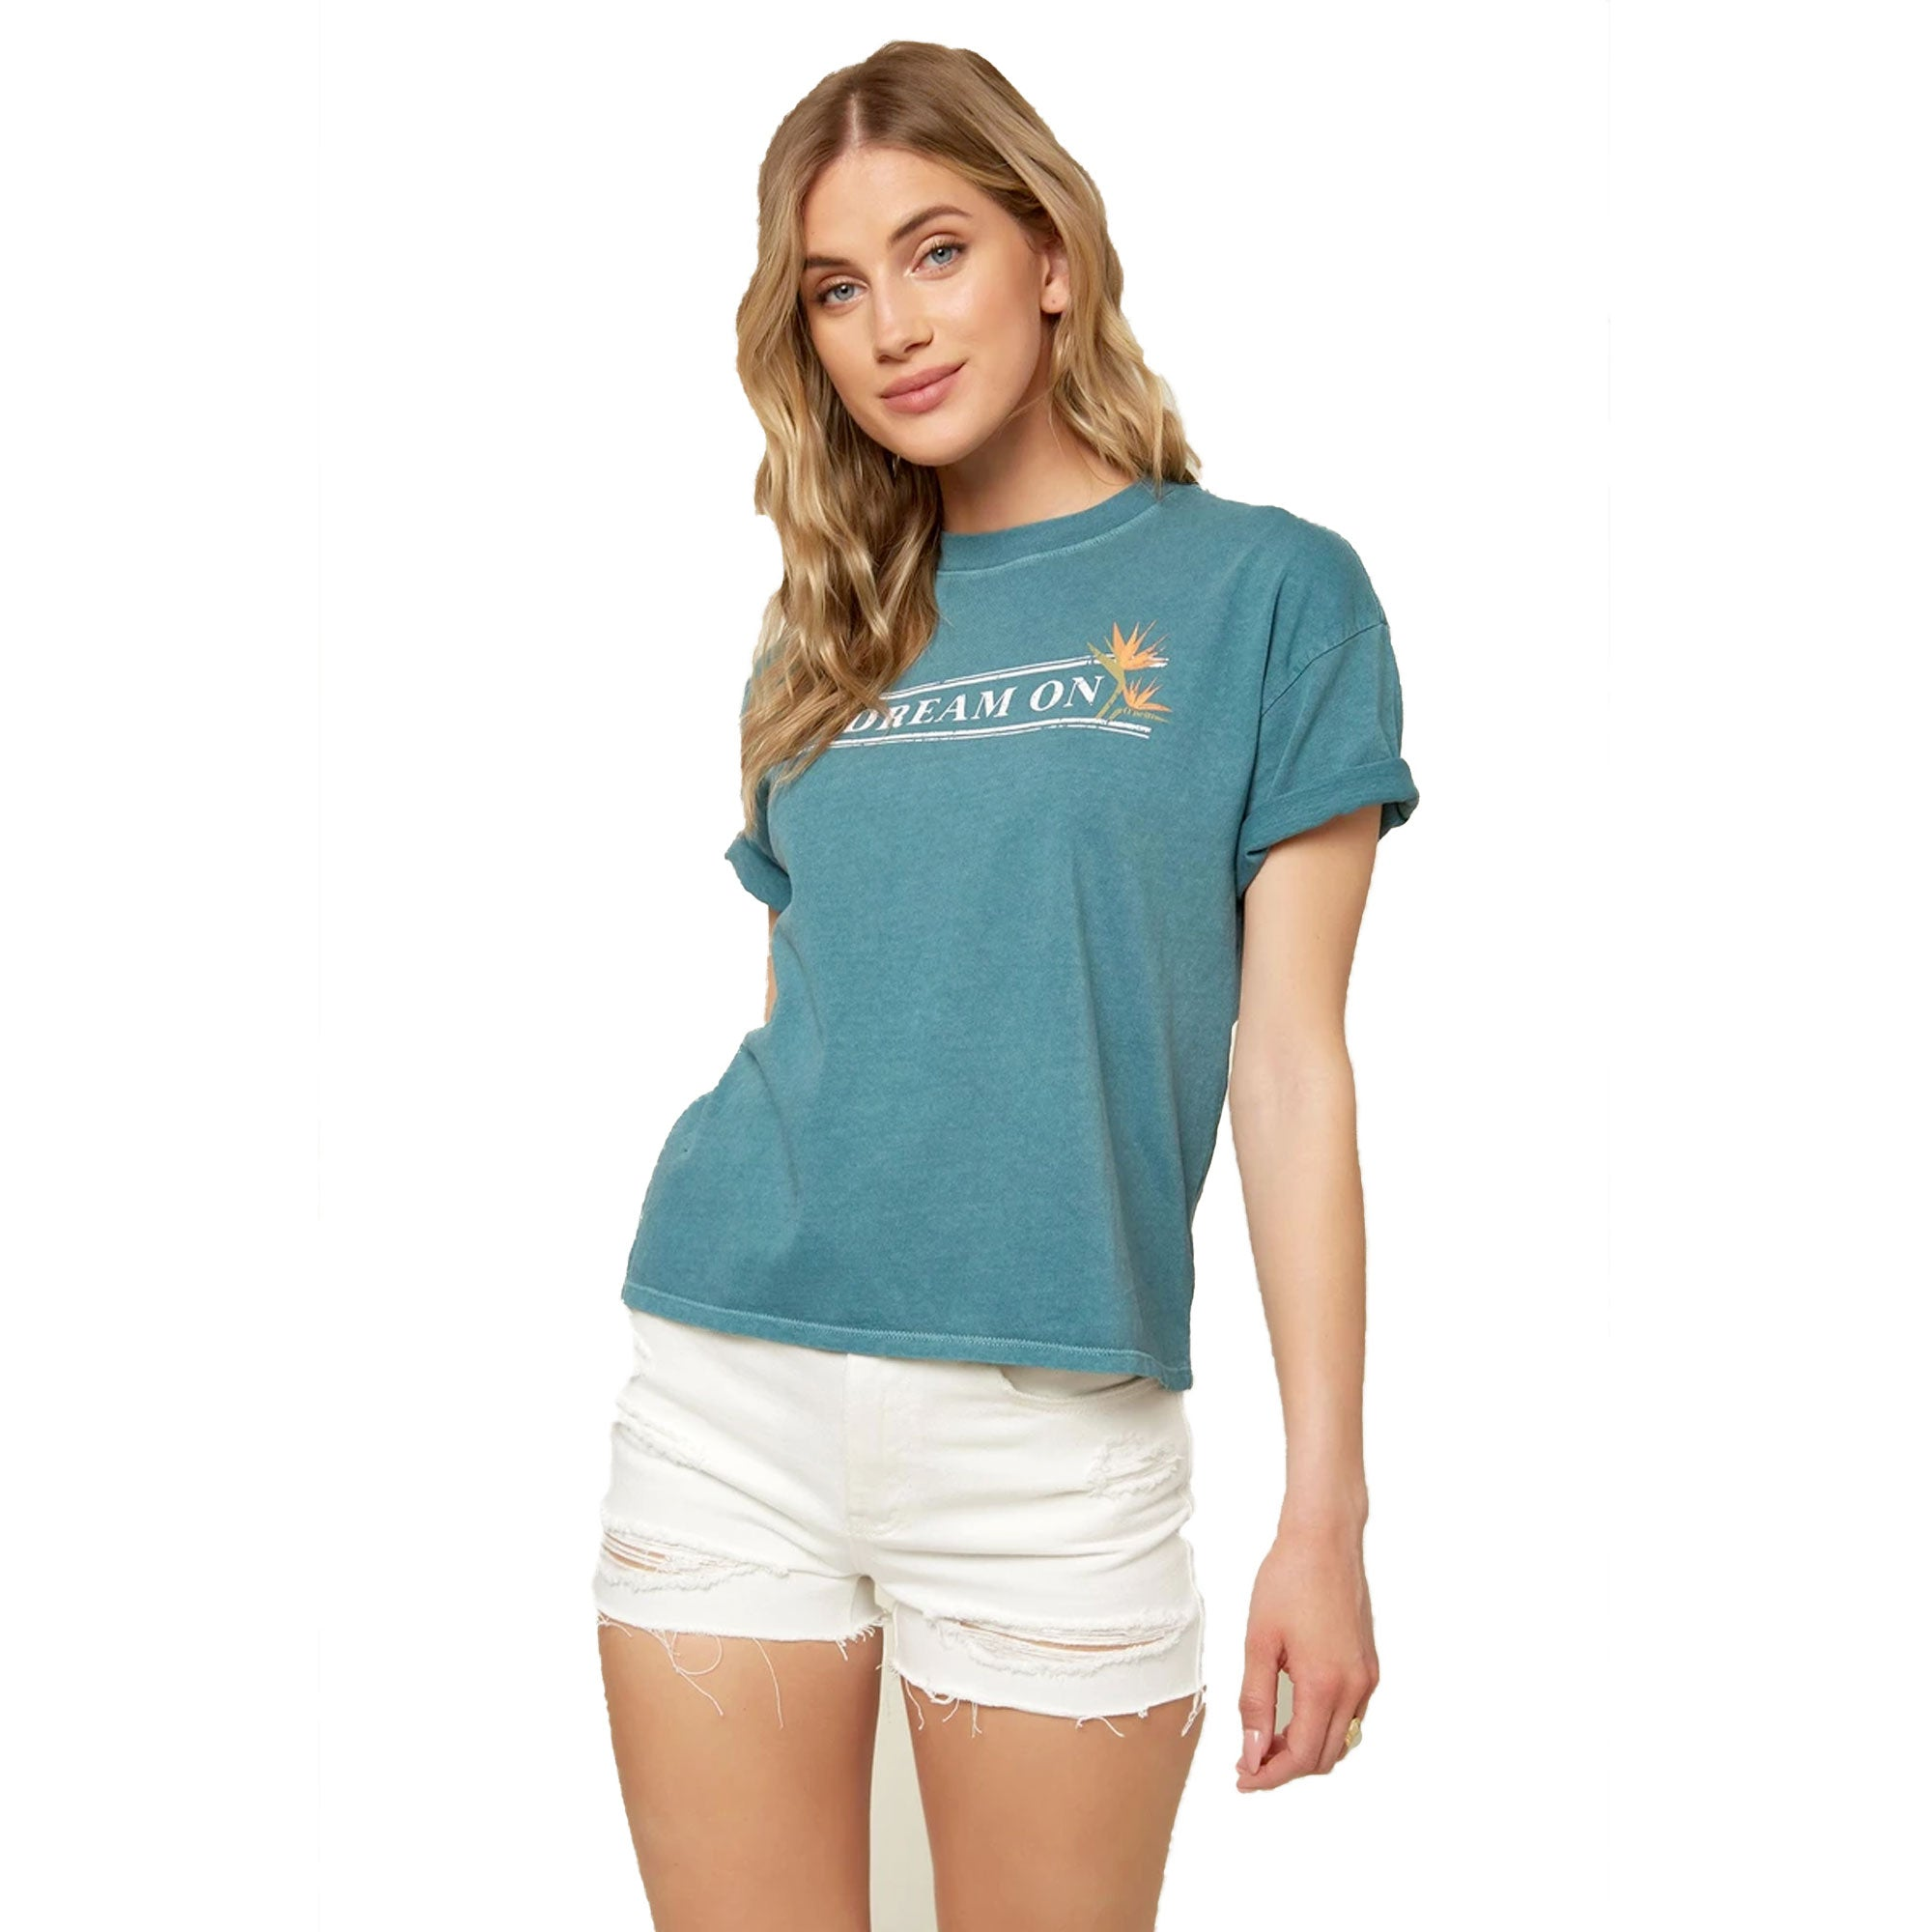 O'Neill Dreams Women's S/S T-Shirt